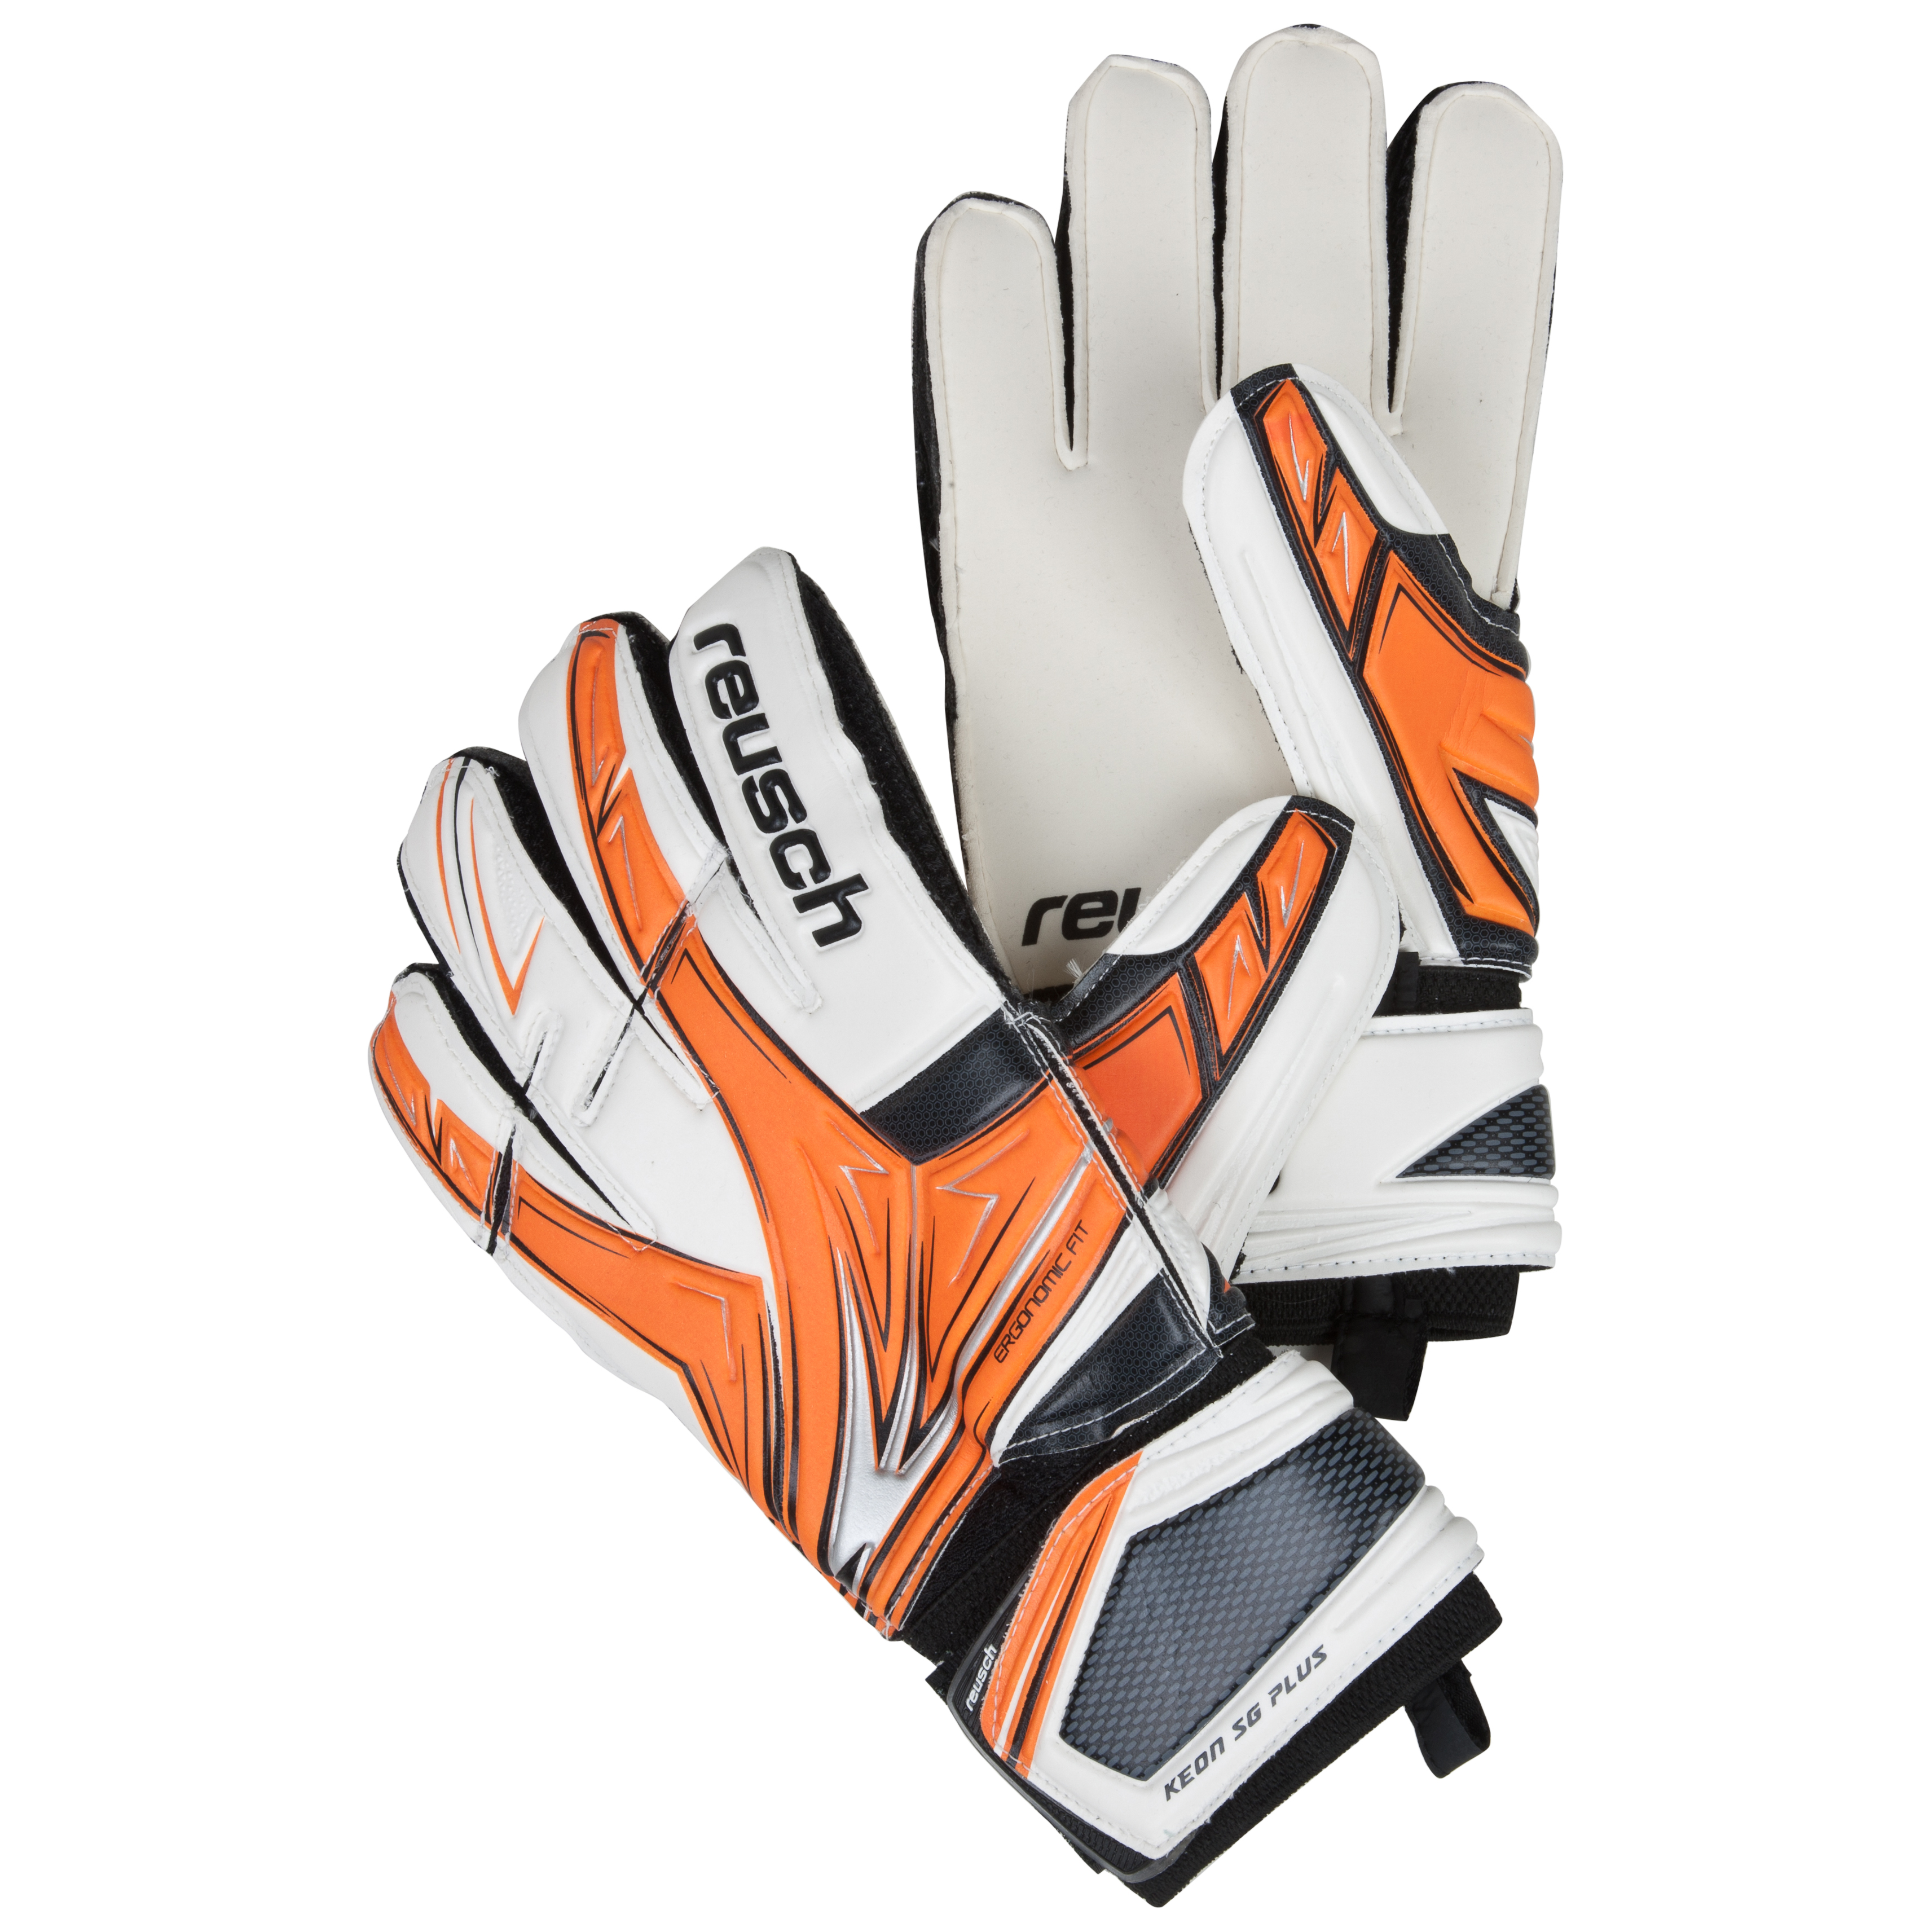 Reusch Keon Pro SG Ortho-Tec LTD Goalkeeper Gloves - Kids-Orange/Black/Ltd